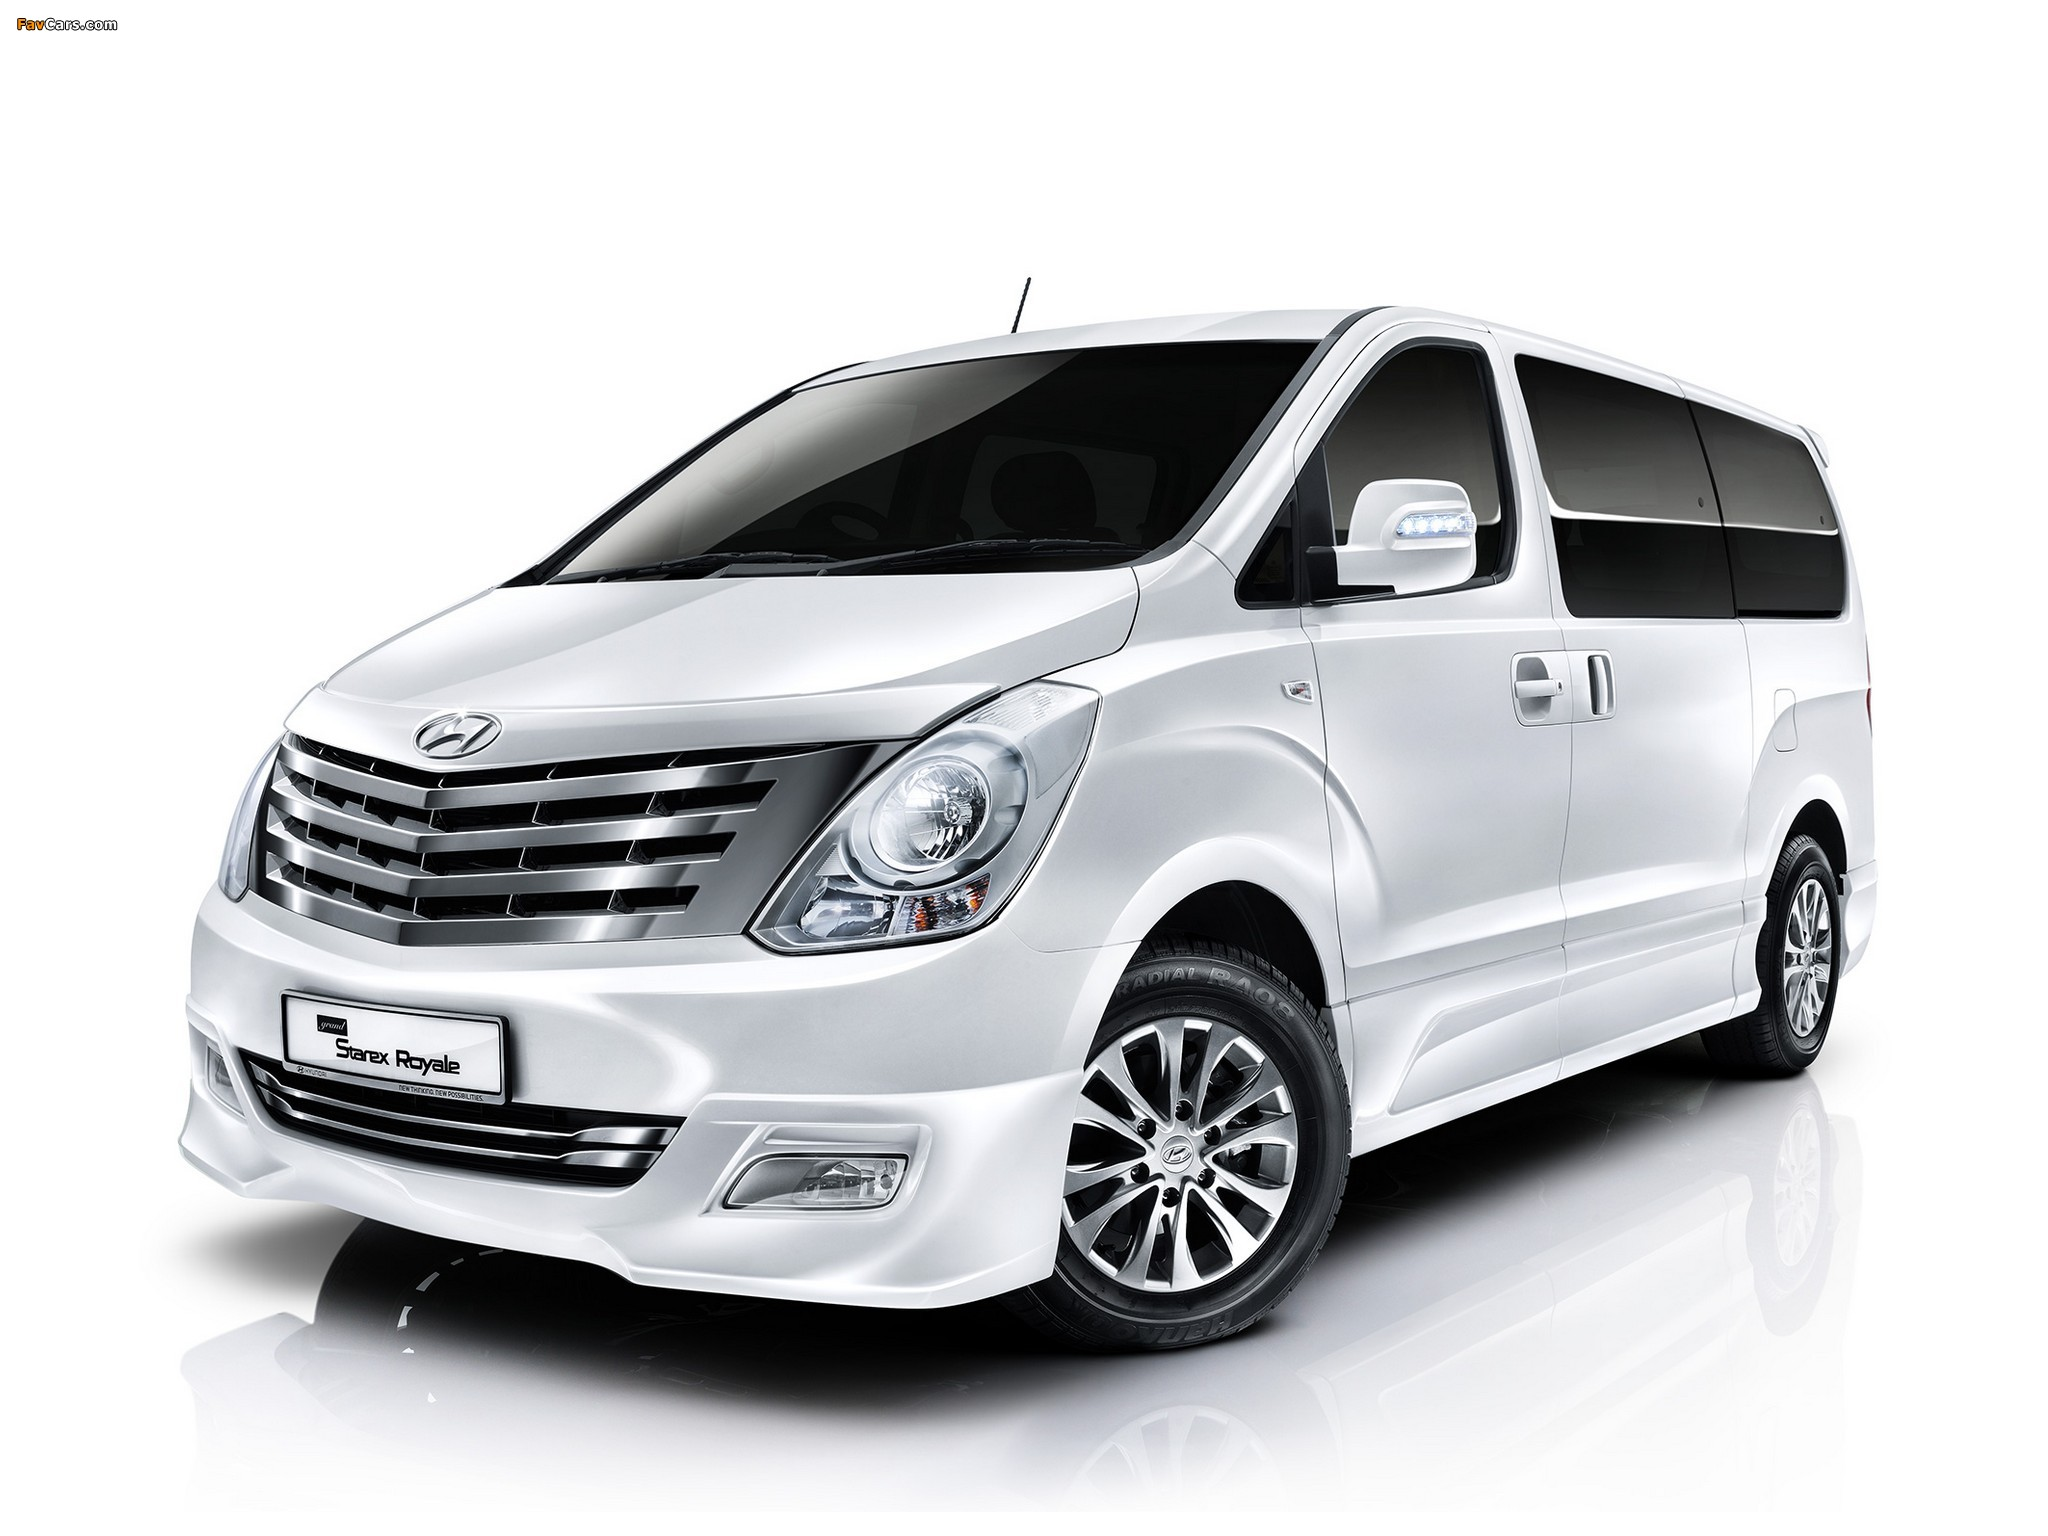 Hyundai Grand Starex Royale 2011 Images (2048x1536